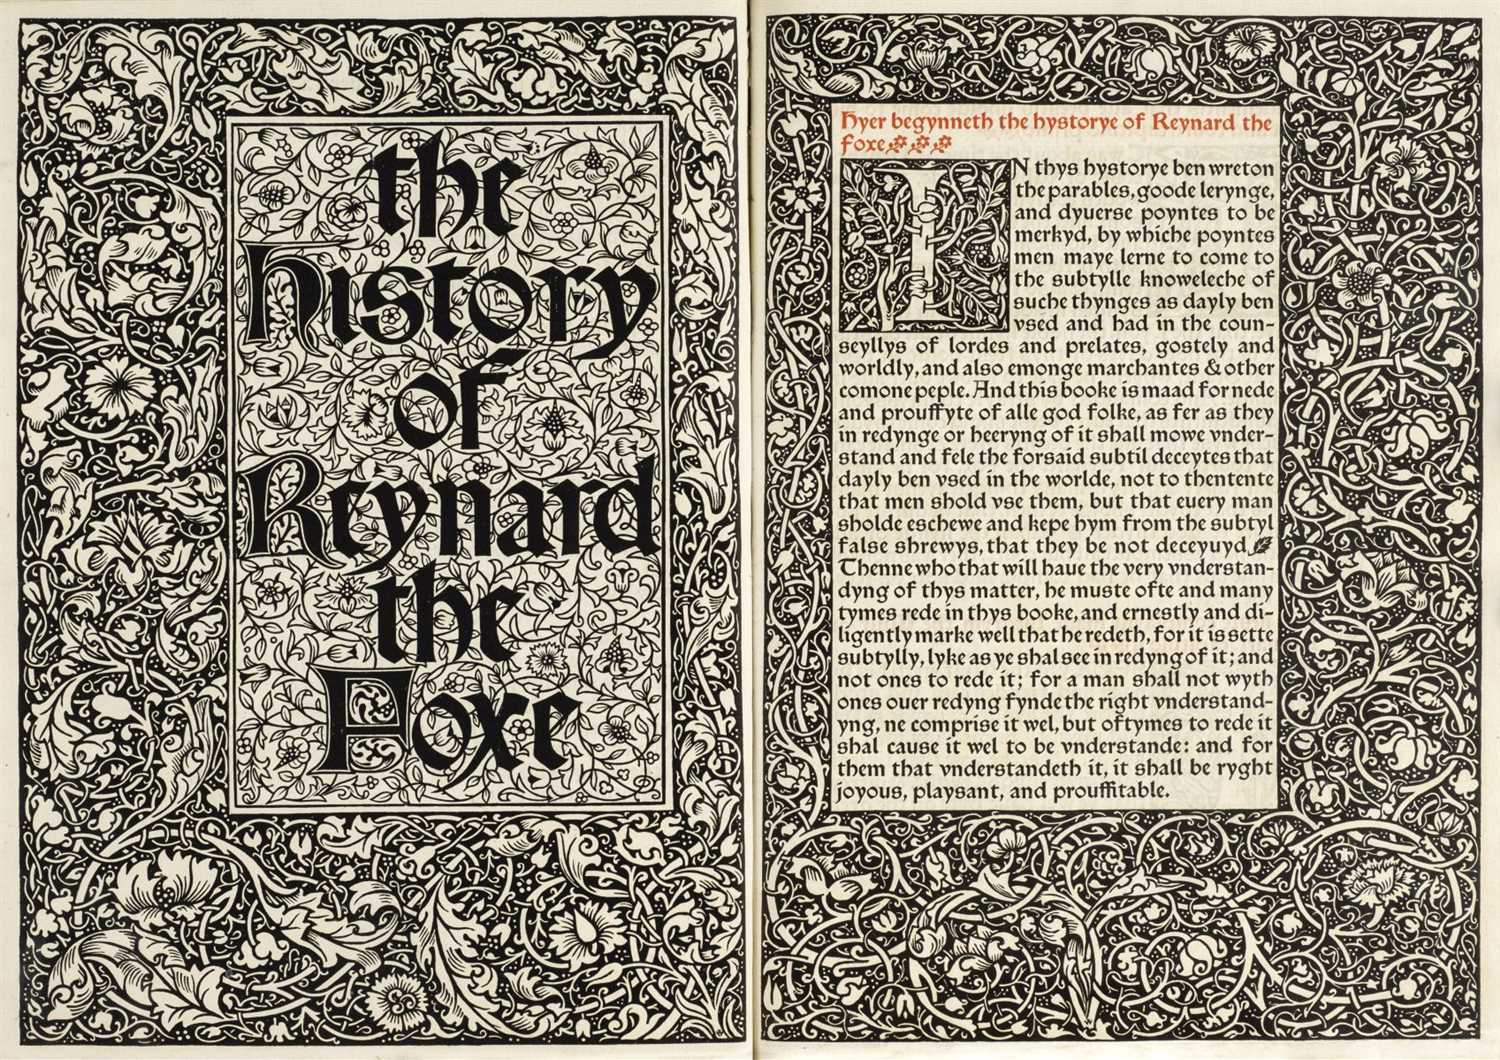 Lot 402-Kelmscott Press. The History of Reynard the Foxe, by William Caxton, Printed by William Morris, 1892